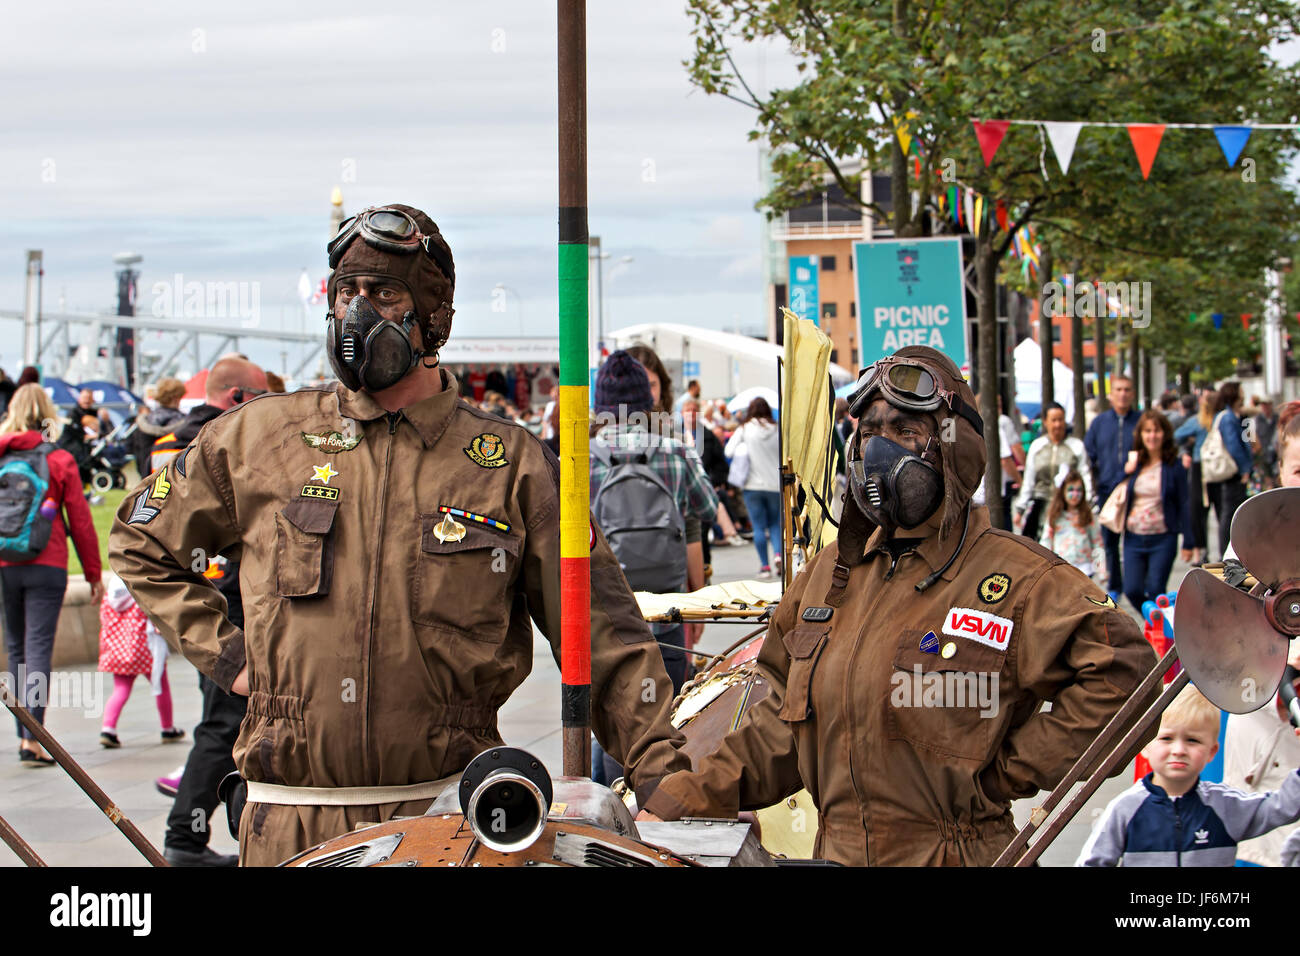 Liverpool, UK. 25th June, 2017. Street entertainers dressed up in RAF googles and helmets at the Mersey River Festival - Stock Image